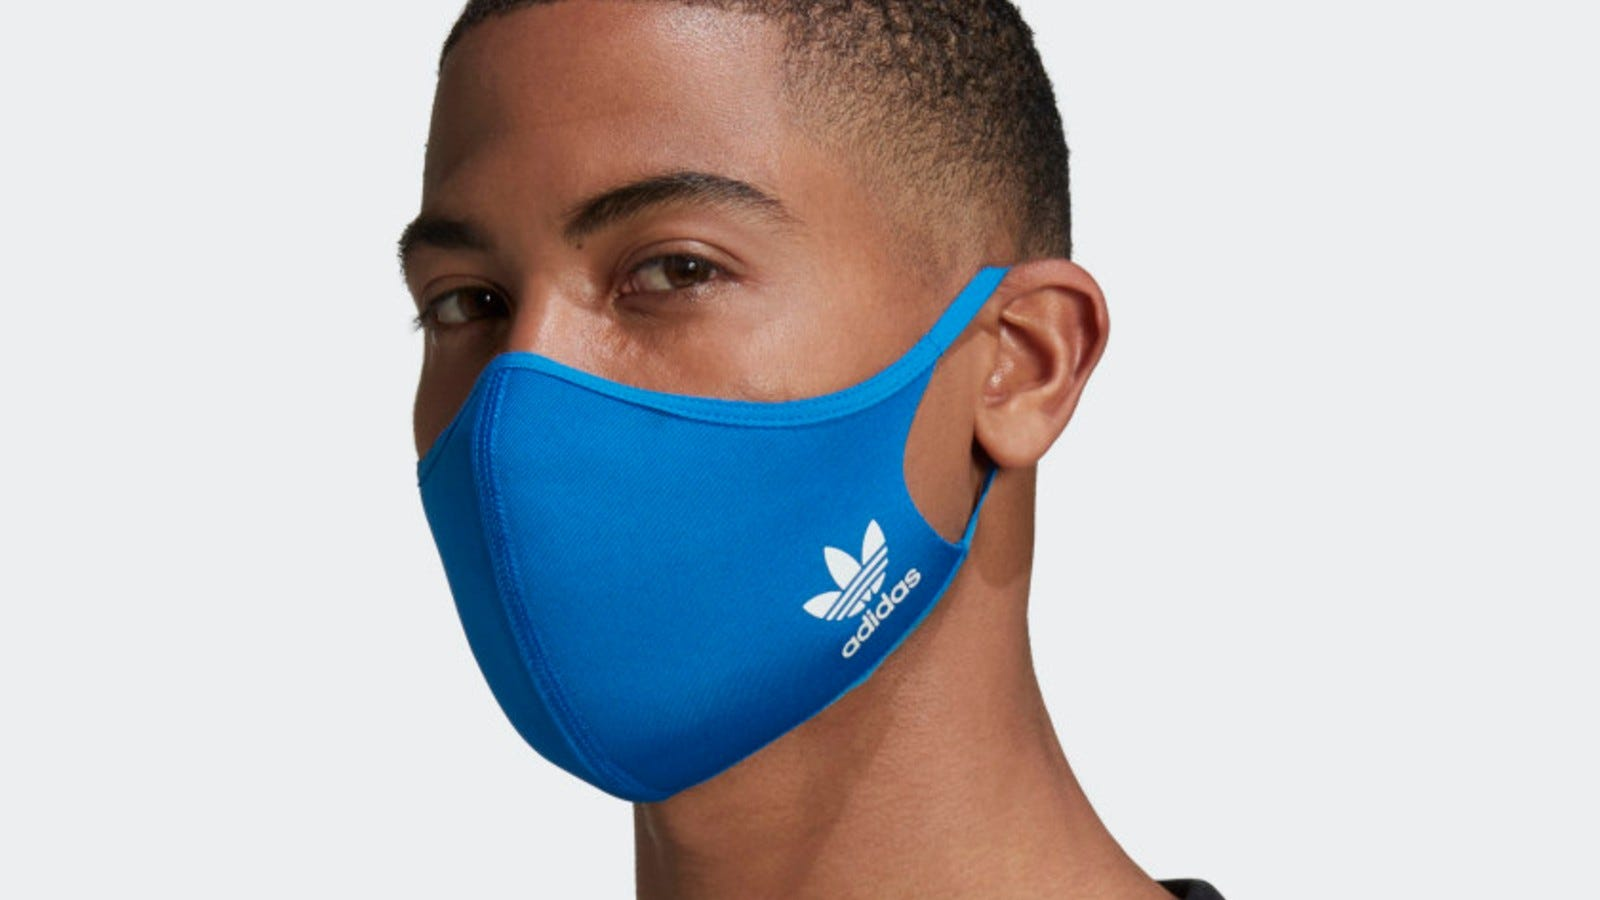 A man wearing a blue Adidas Face Cover.